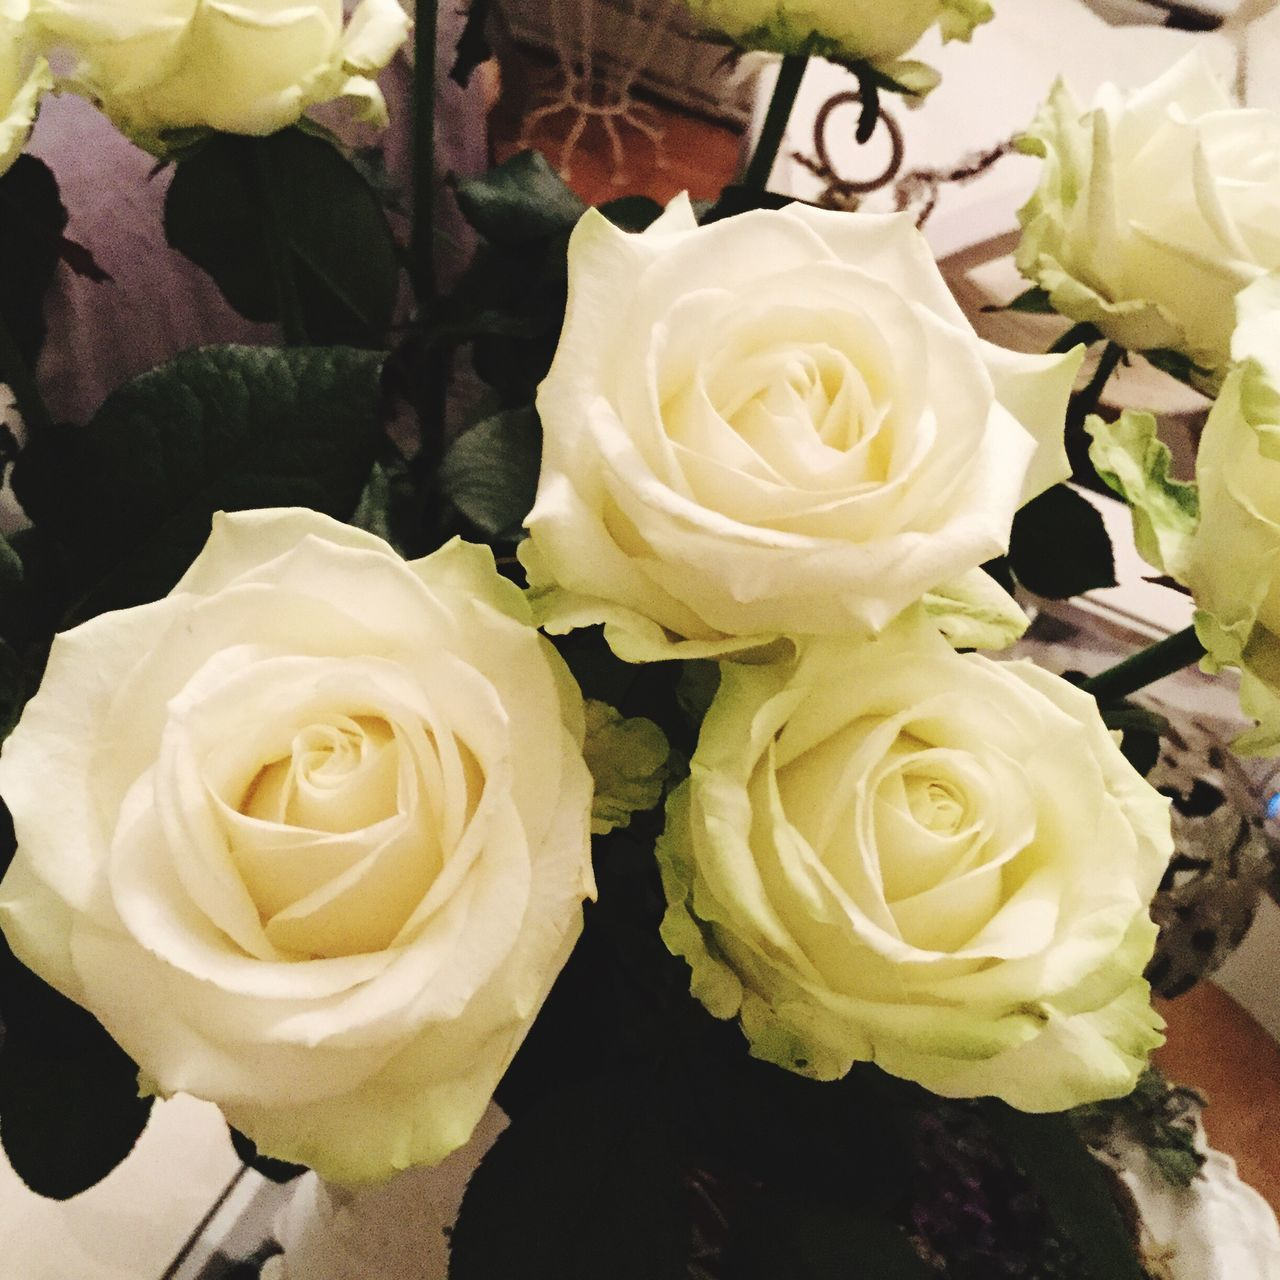 Rosen Weiße Rosen 🌾 Petal Freshness Flower Head Flower Rose - Flower Fragility Beauty In Nature Close-up Nature Rosé Yellow White High Angle View Bloom Single Flower White Roses Roses Eyeemflowerlover Eyeemroses Bouquet Springtime Blossom Softness